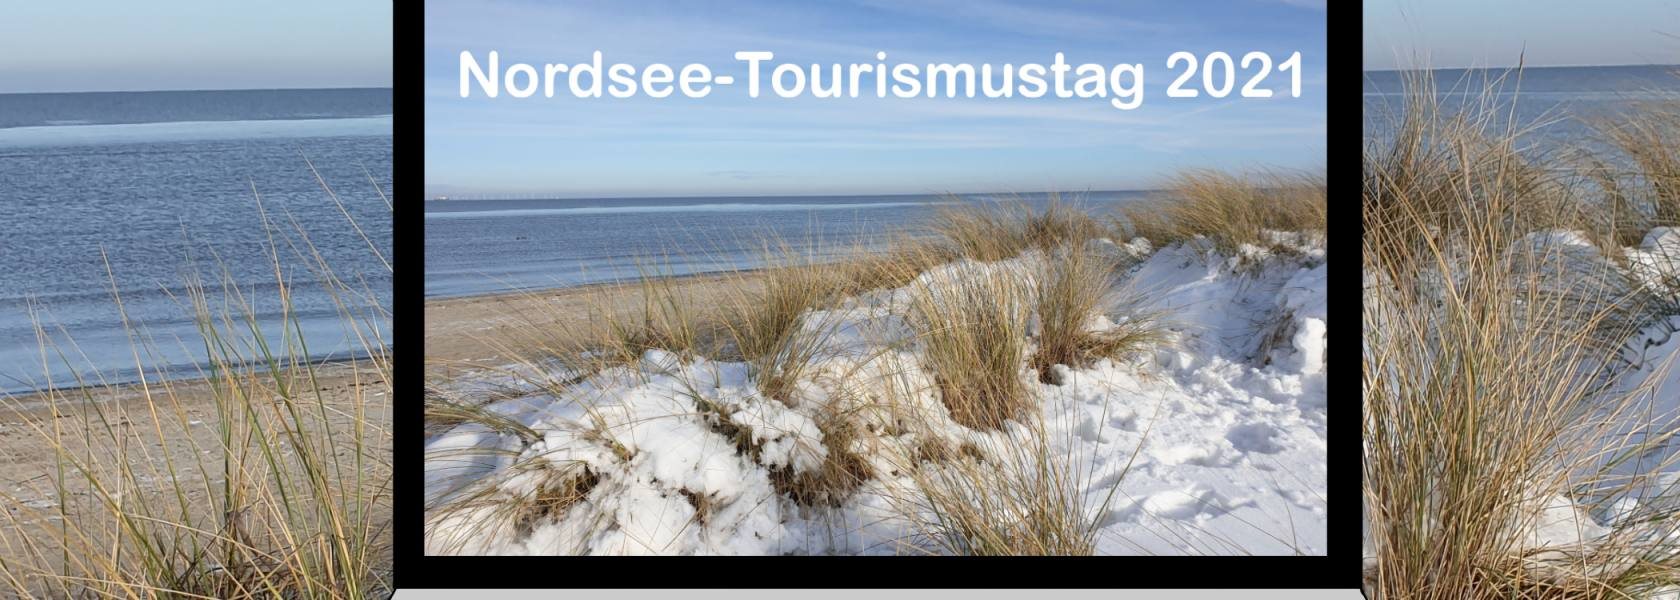 Nordsee Tourismustag